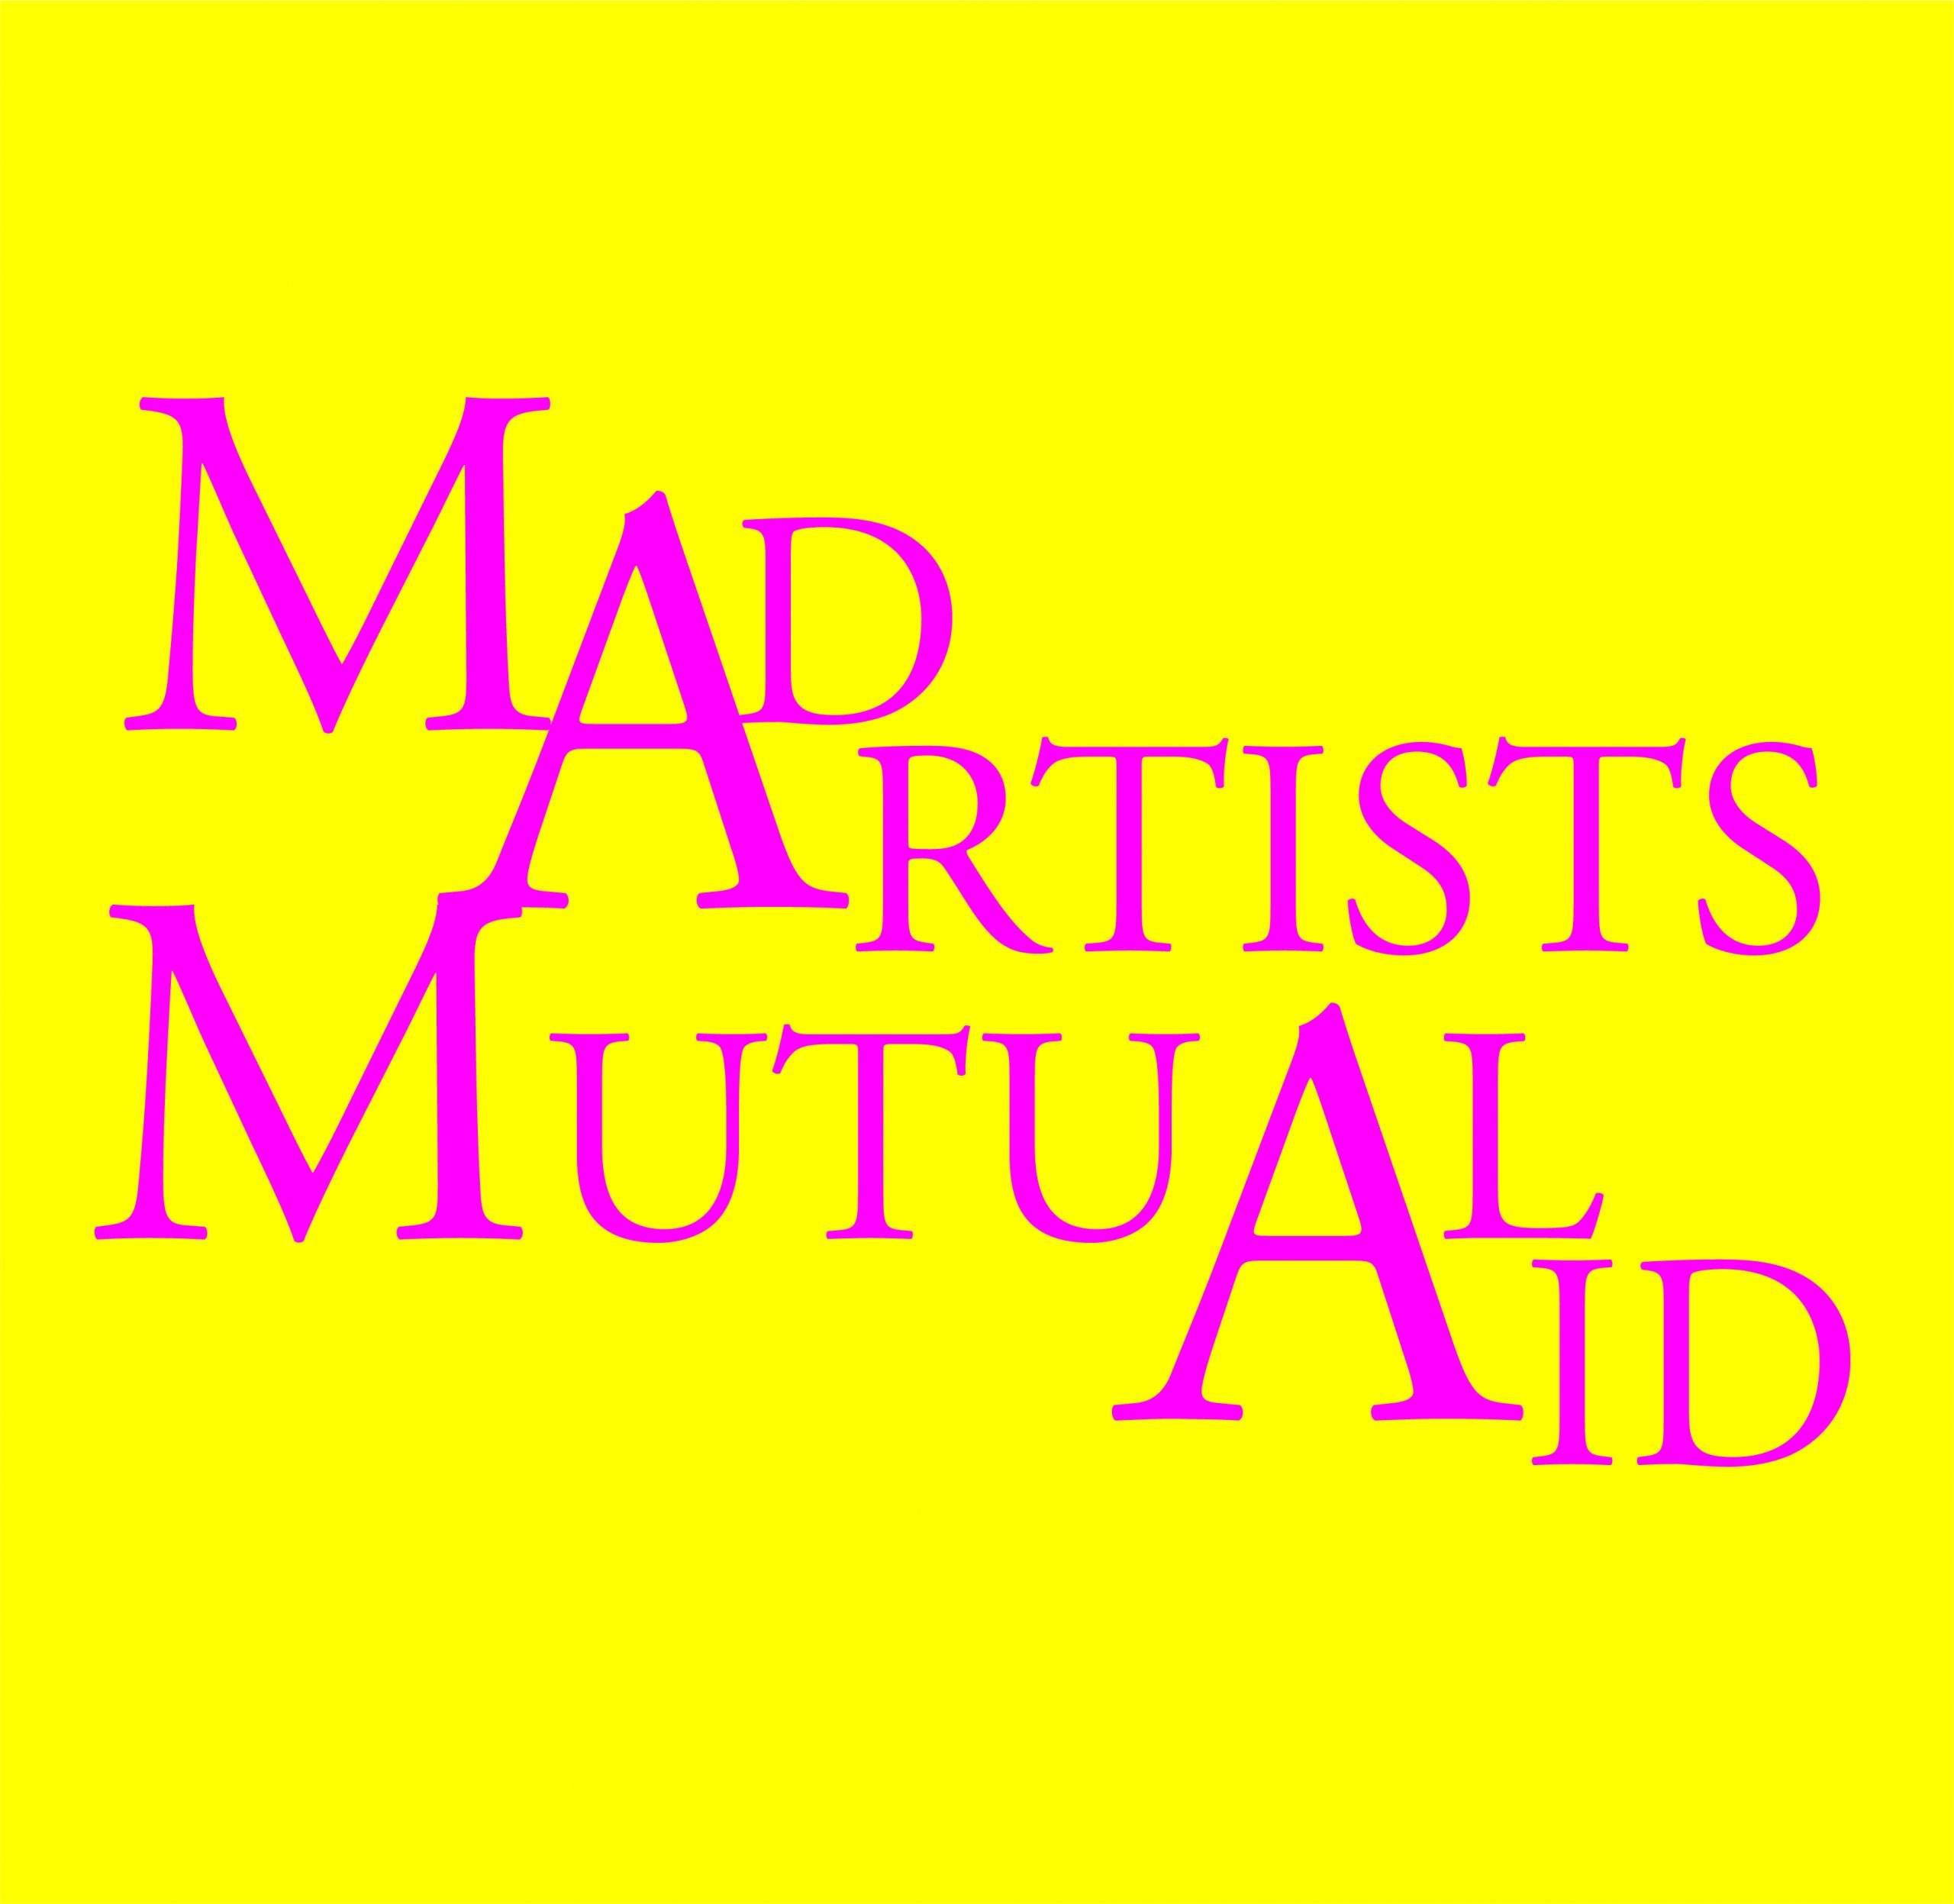 Yellow square with Mad Artists Mutual Aid written in pink